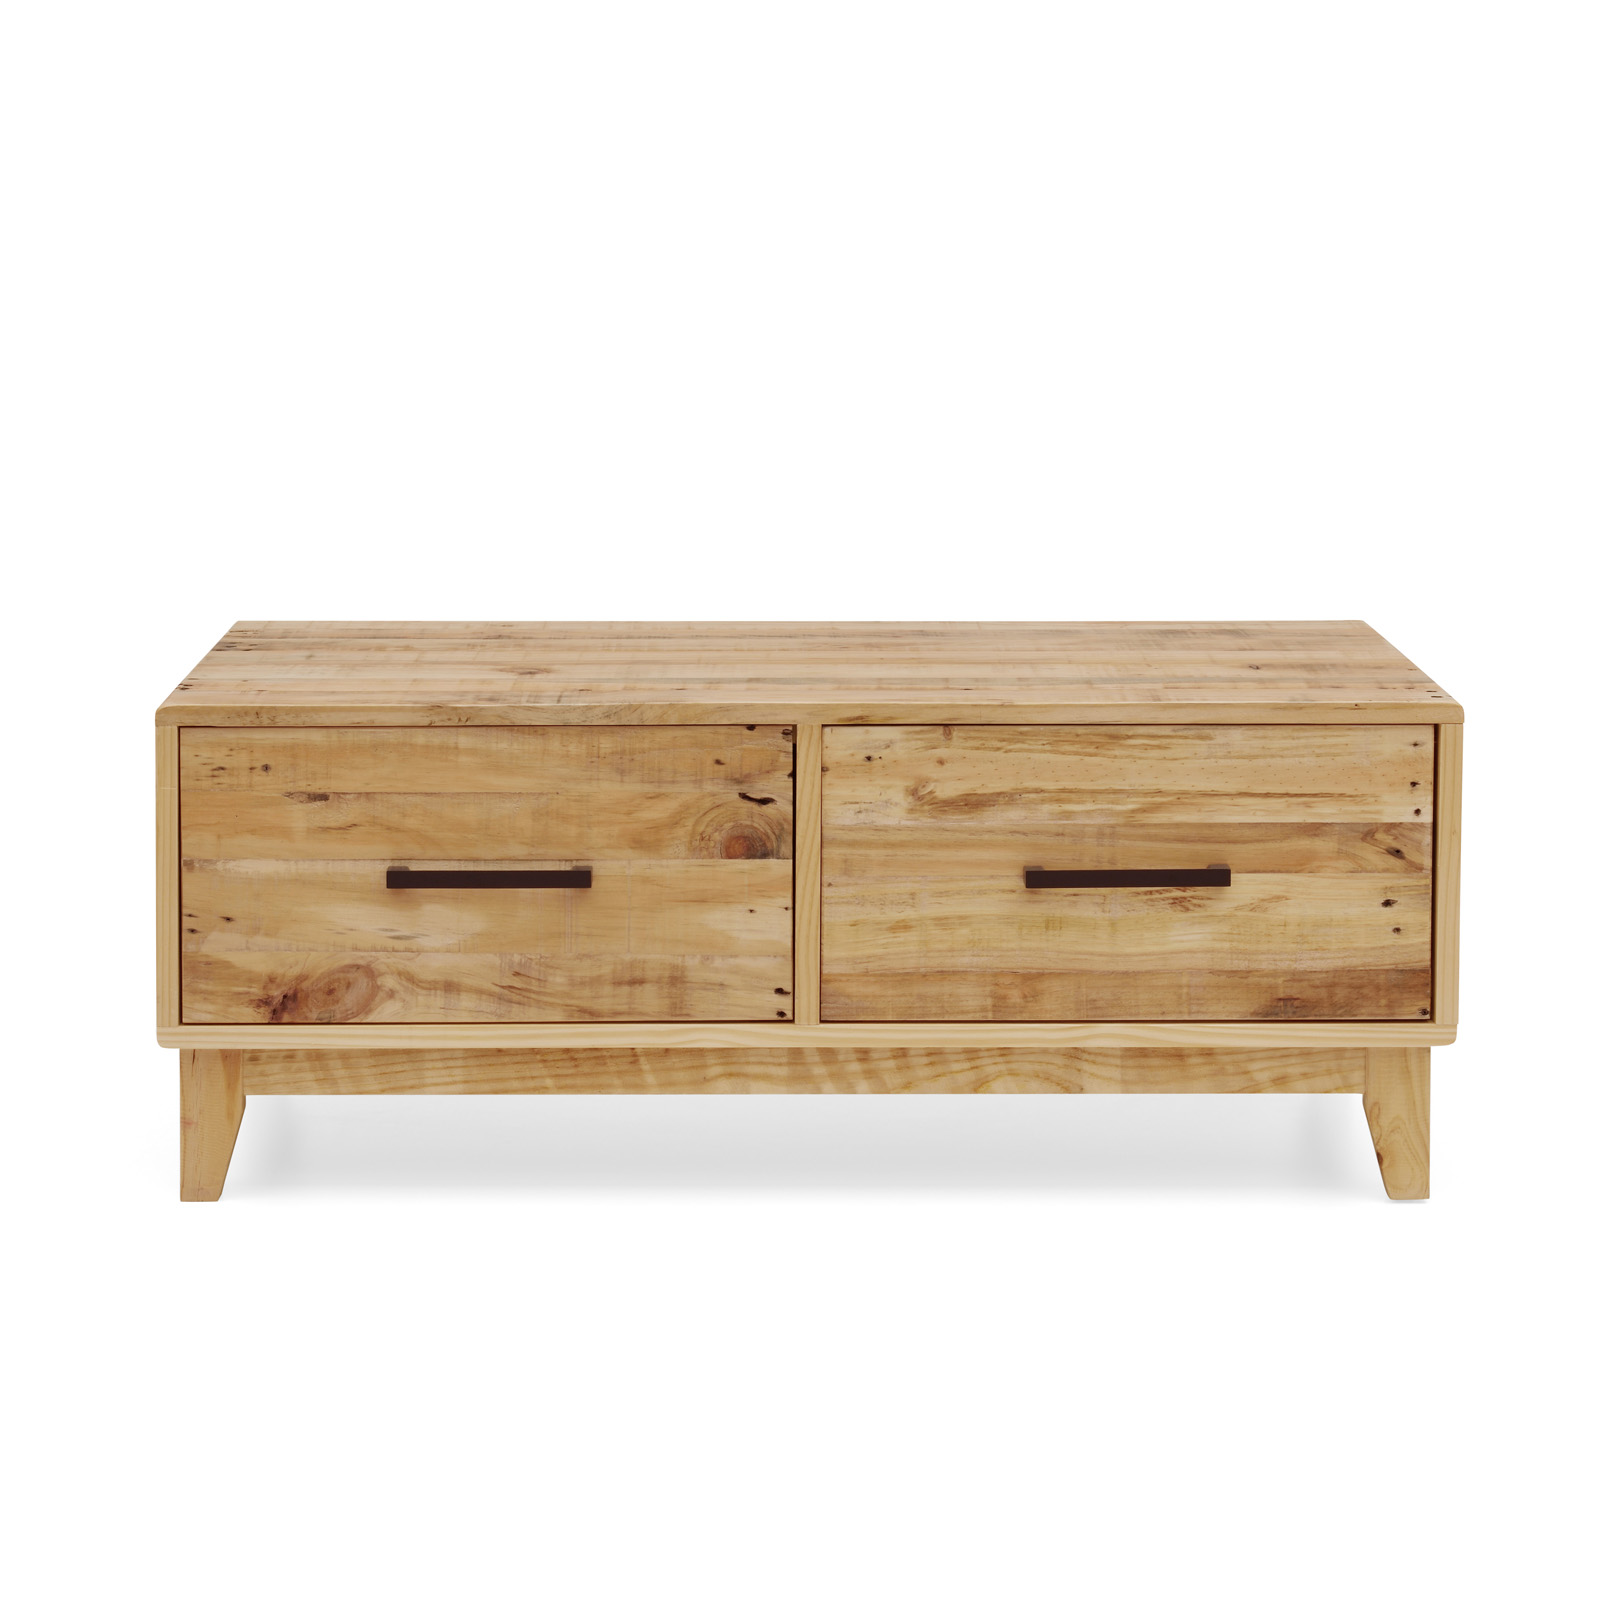 Portland Brand New Recycled Solid Pine Timber Coffee Table Storage Cabinet Unit Ebay